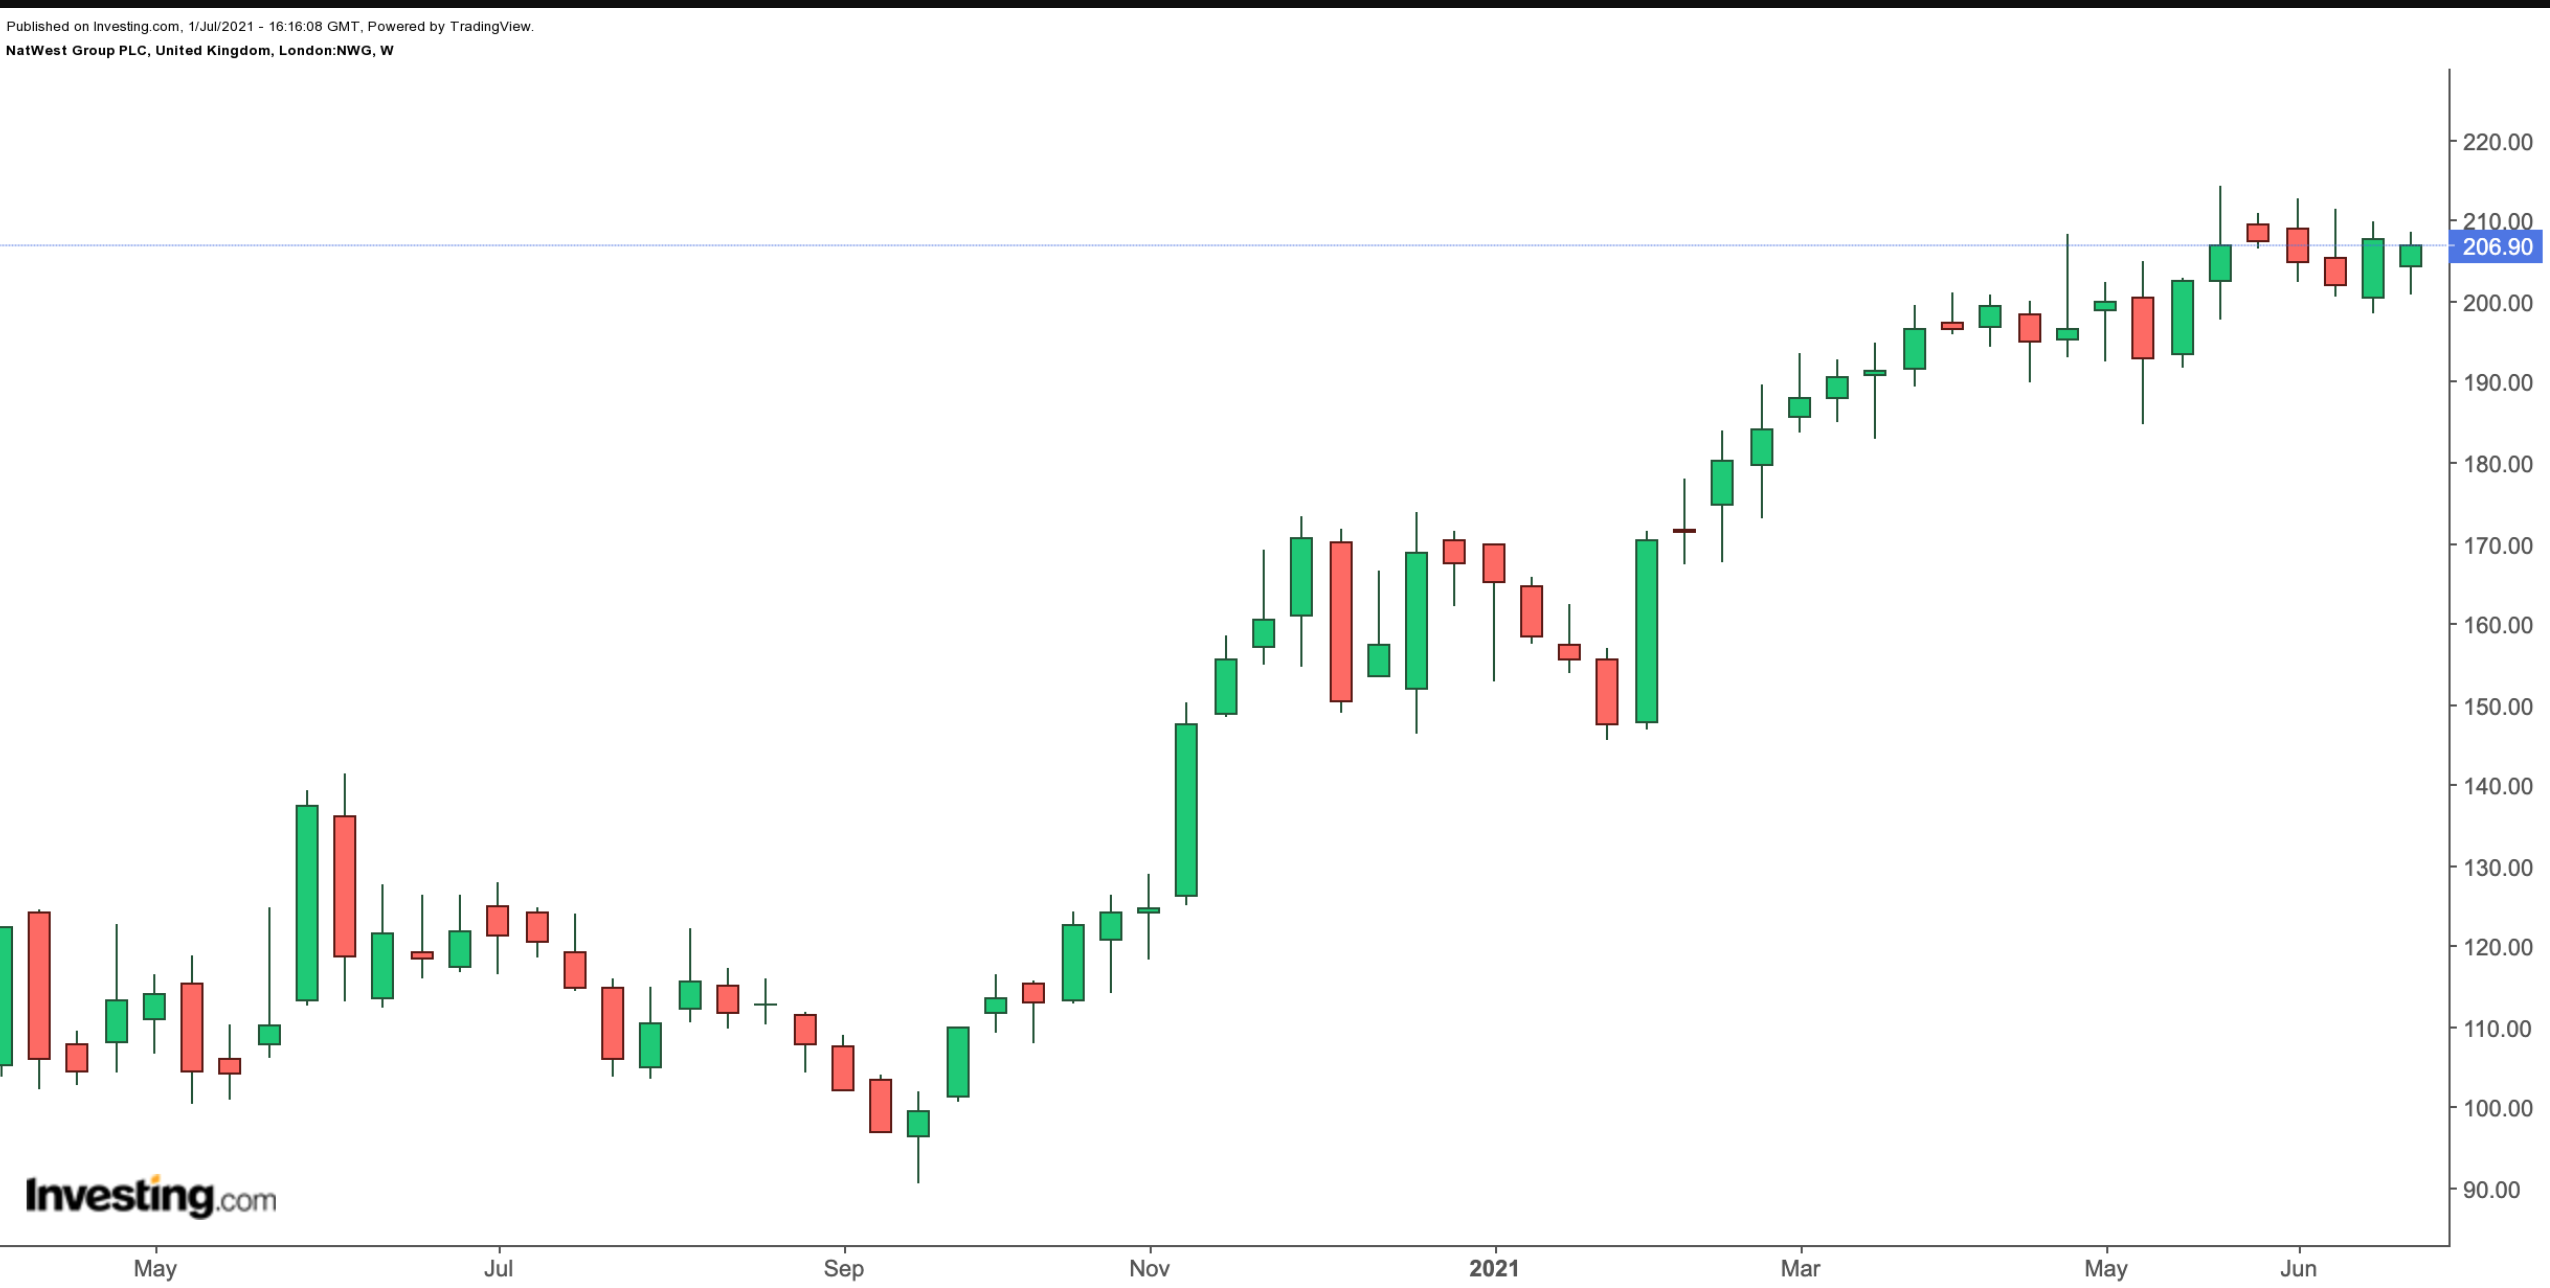 NatWest Group Weekly Chart.